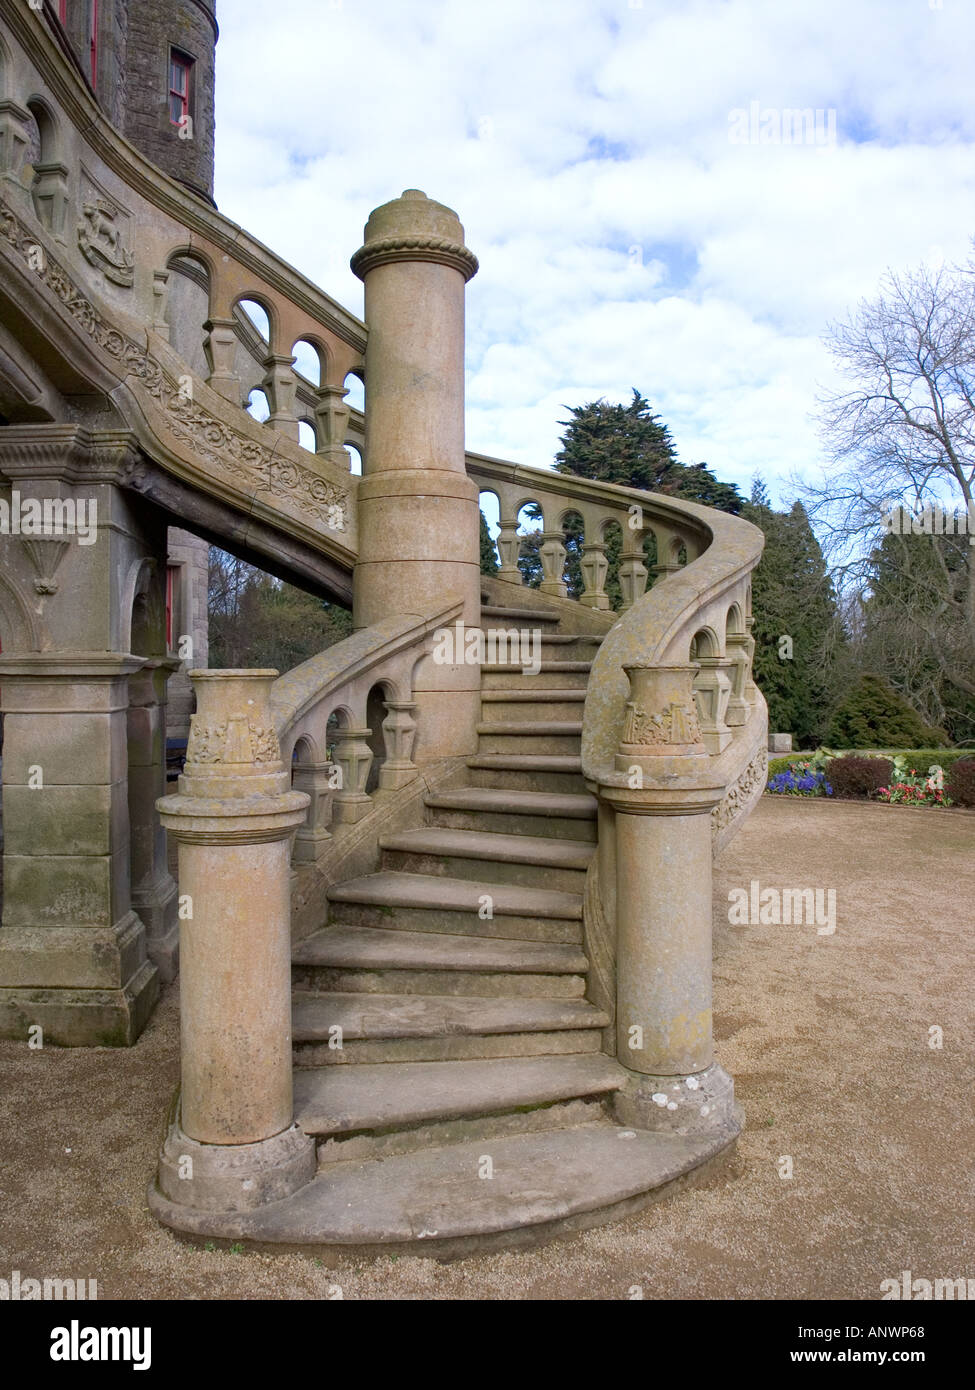 Italian style serpentine staircase Belfast Castle Cave Hill Antrim Northern Ireland UK - Stock Image